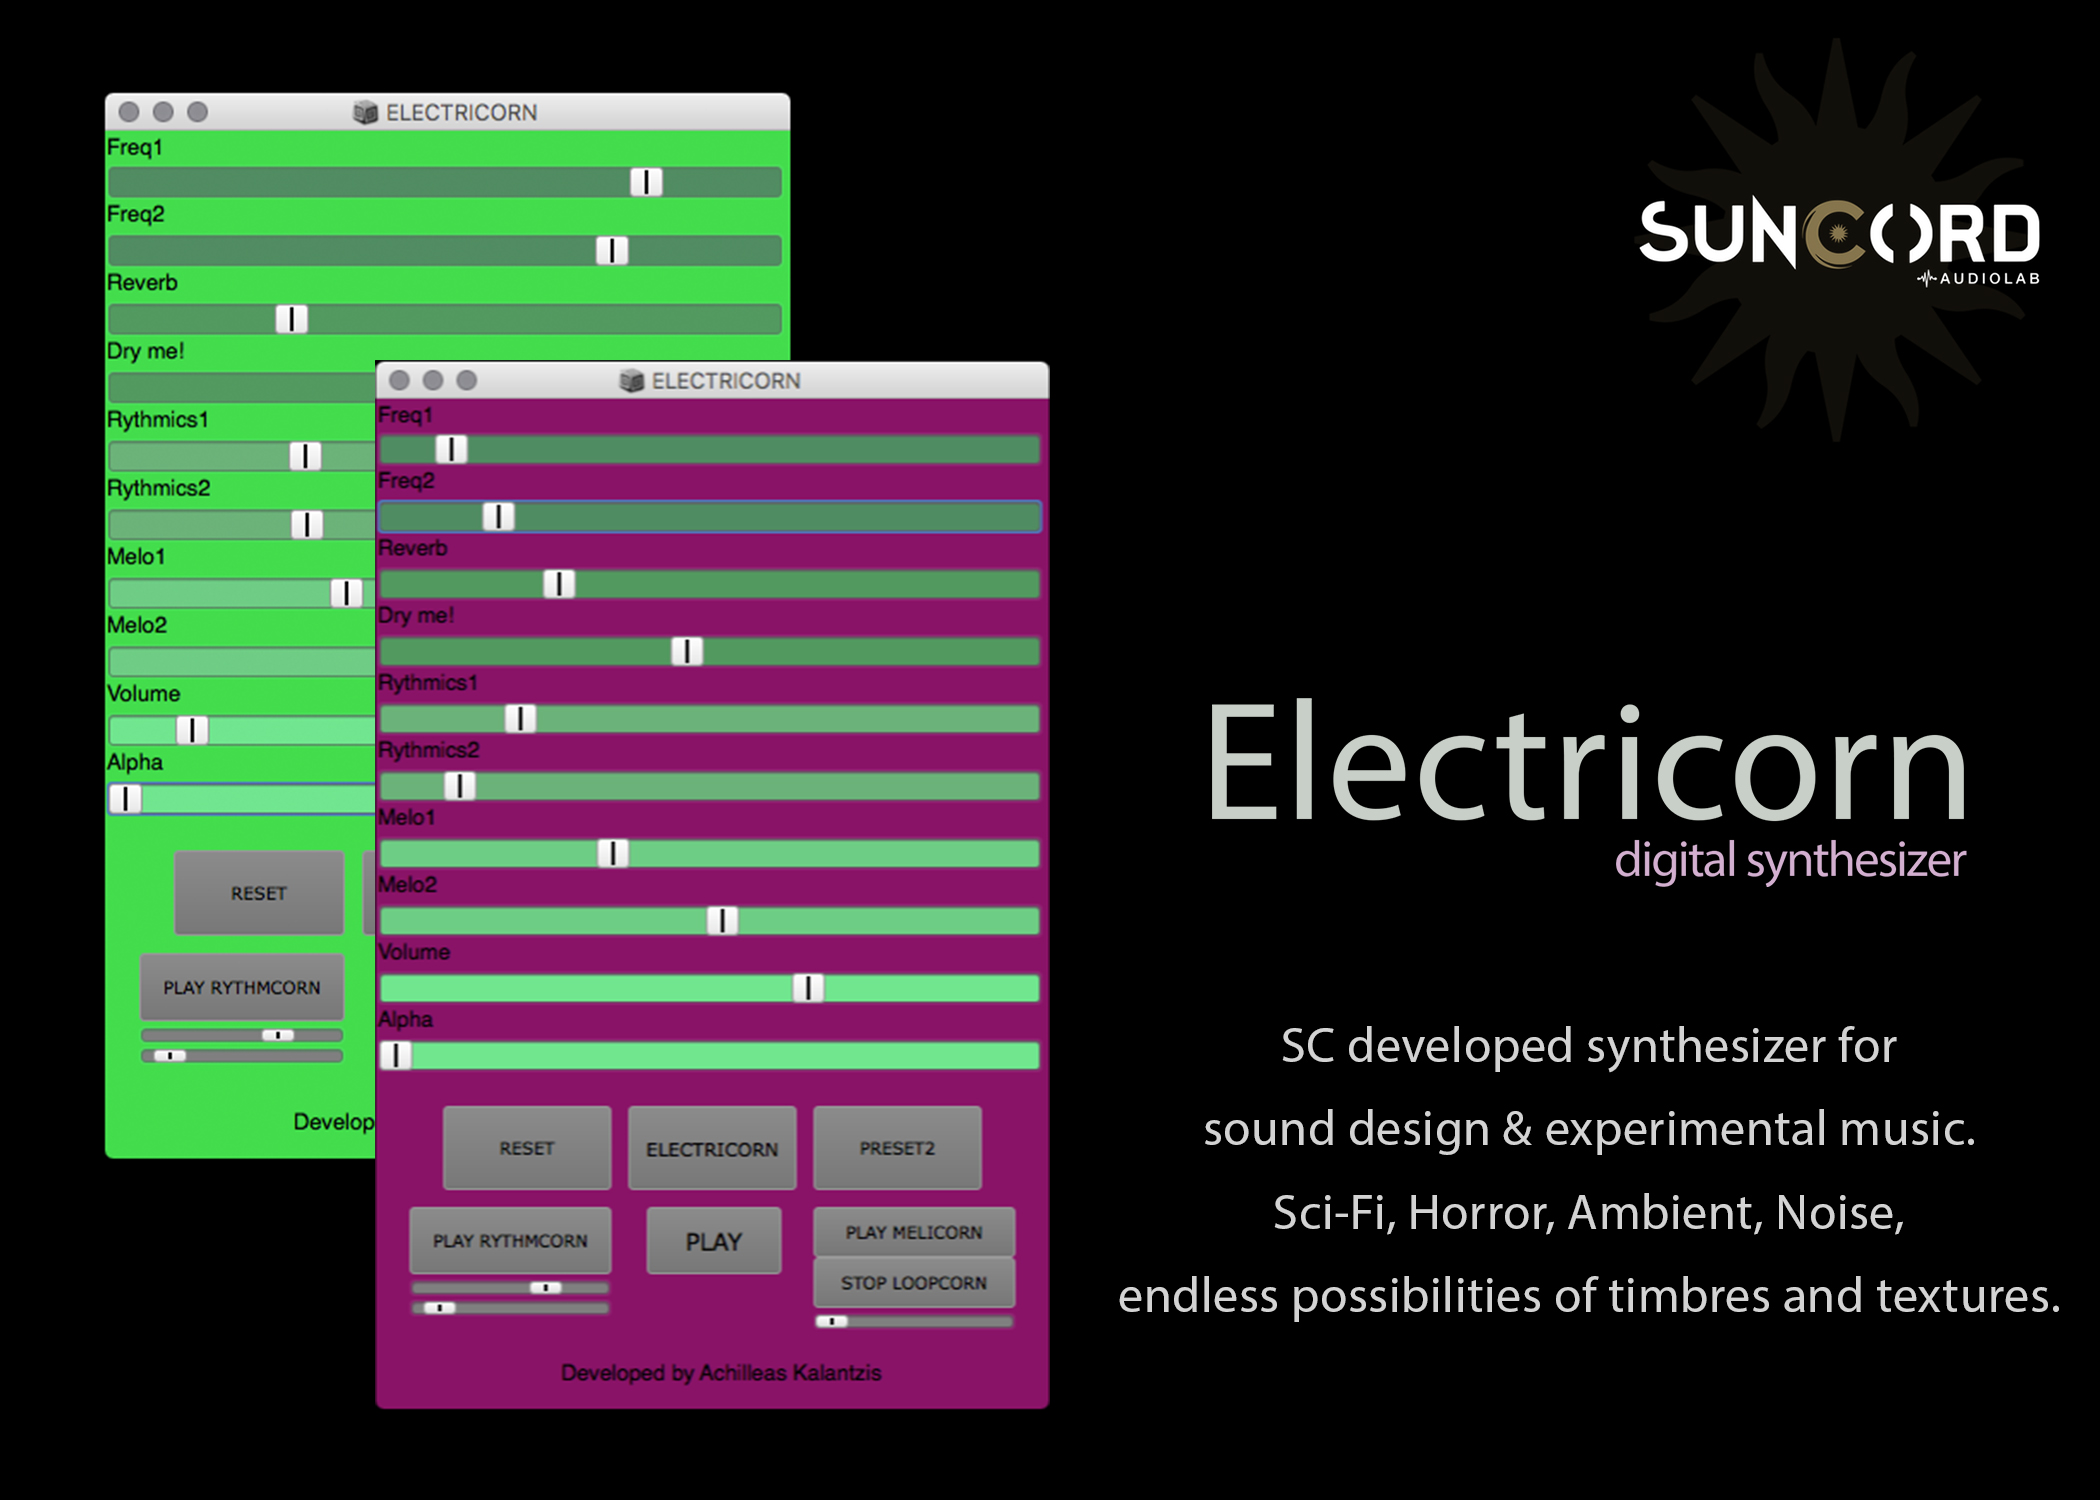 Electricorn: Digital Synth for Sound Design & Experimental